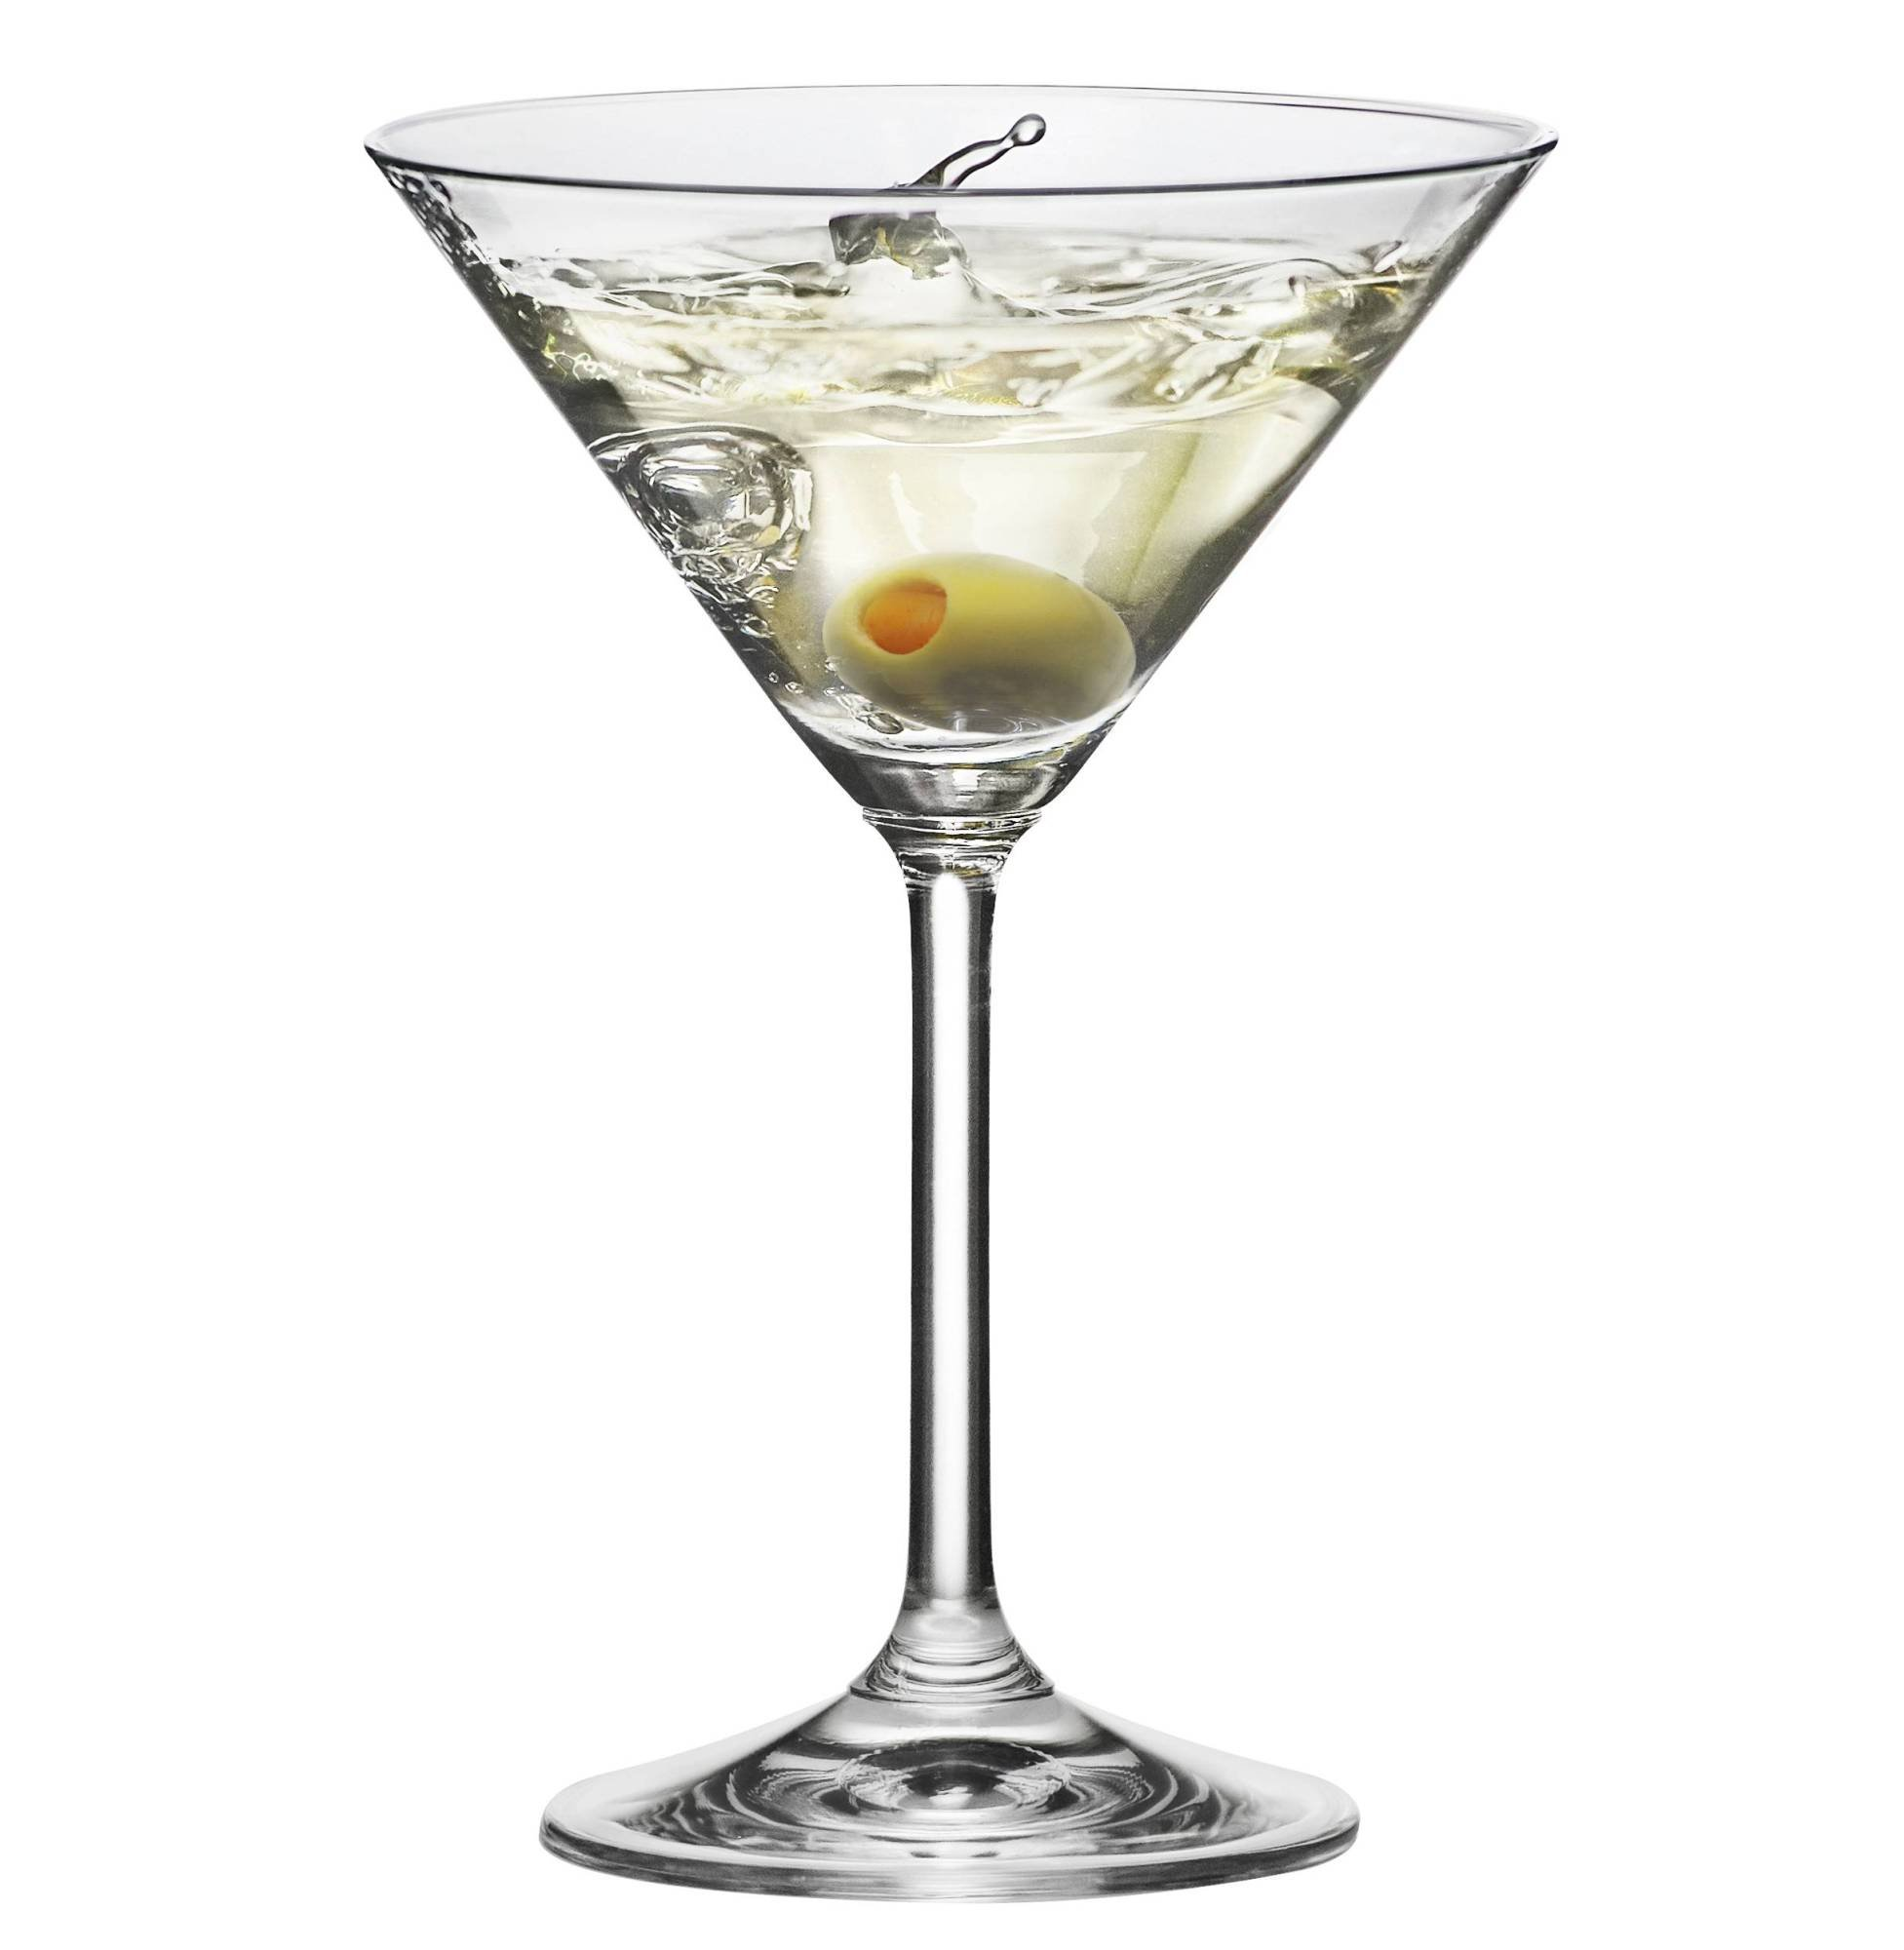 RONA RONA GALA Martini Glass 6 Oz. | Set Of 6